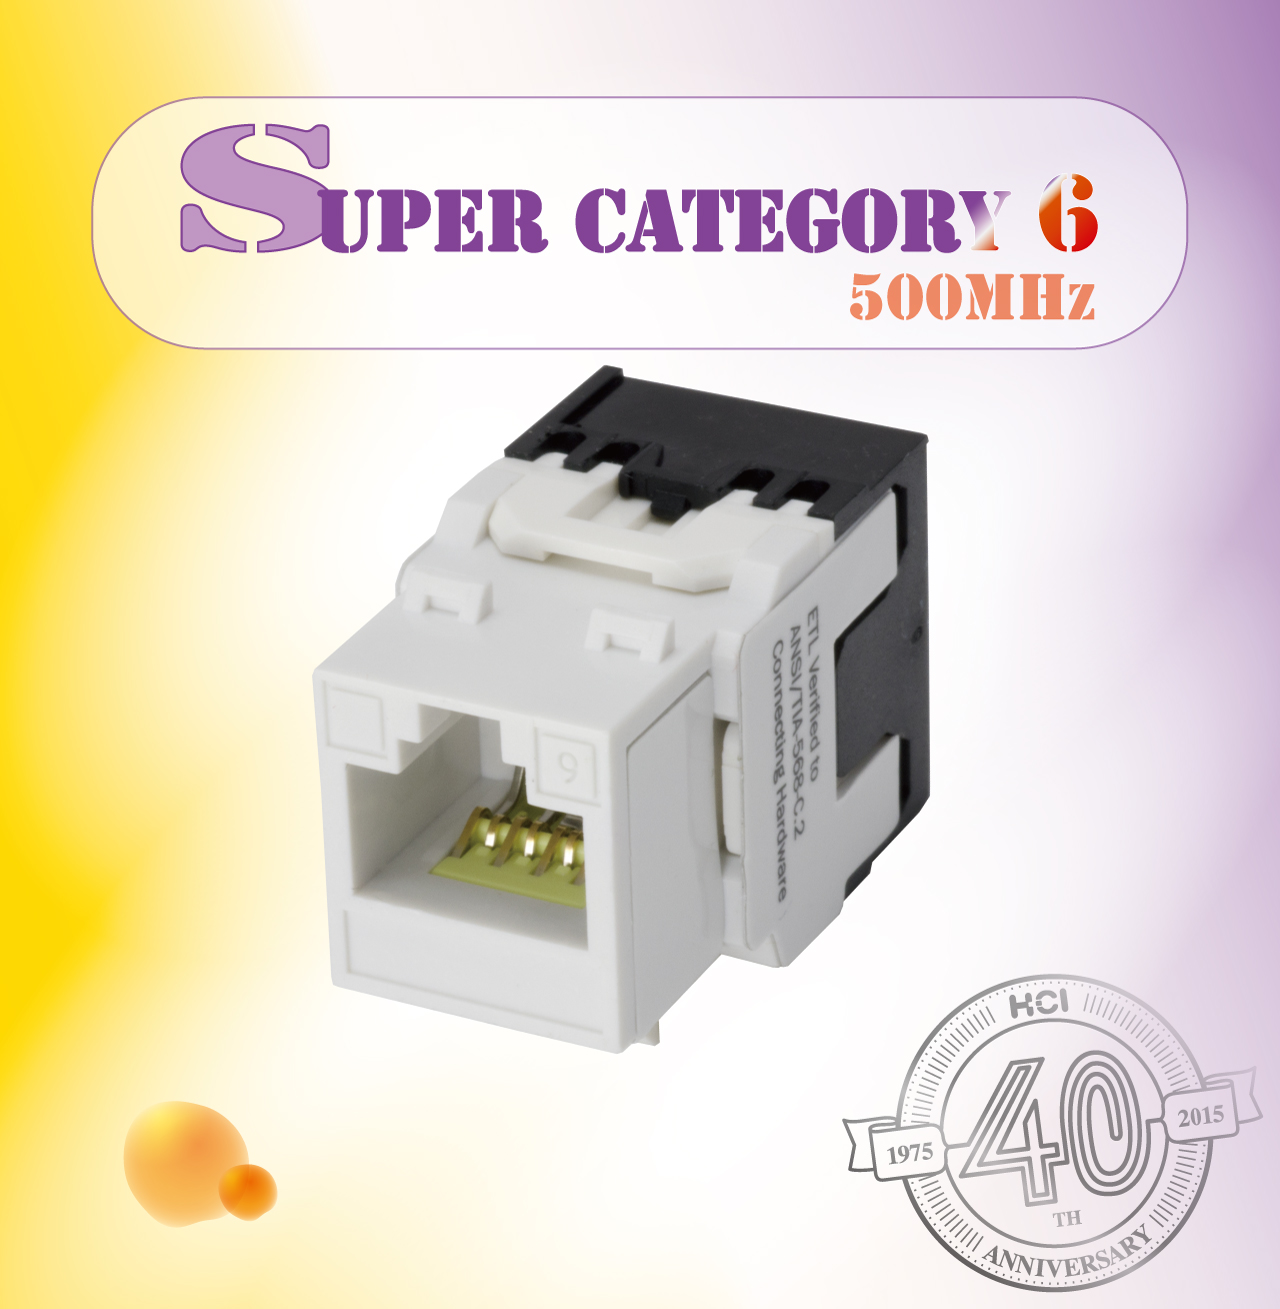 Super Category 6 Component Level 180° UTP Punchdown Keystone Jack - Super Category 6180° UTP Punchdown Keystone Jack